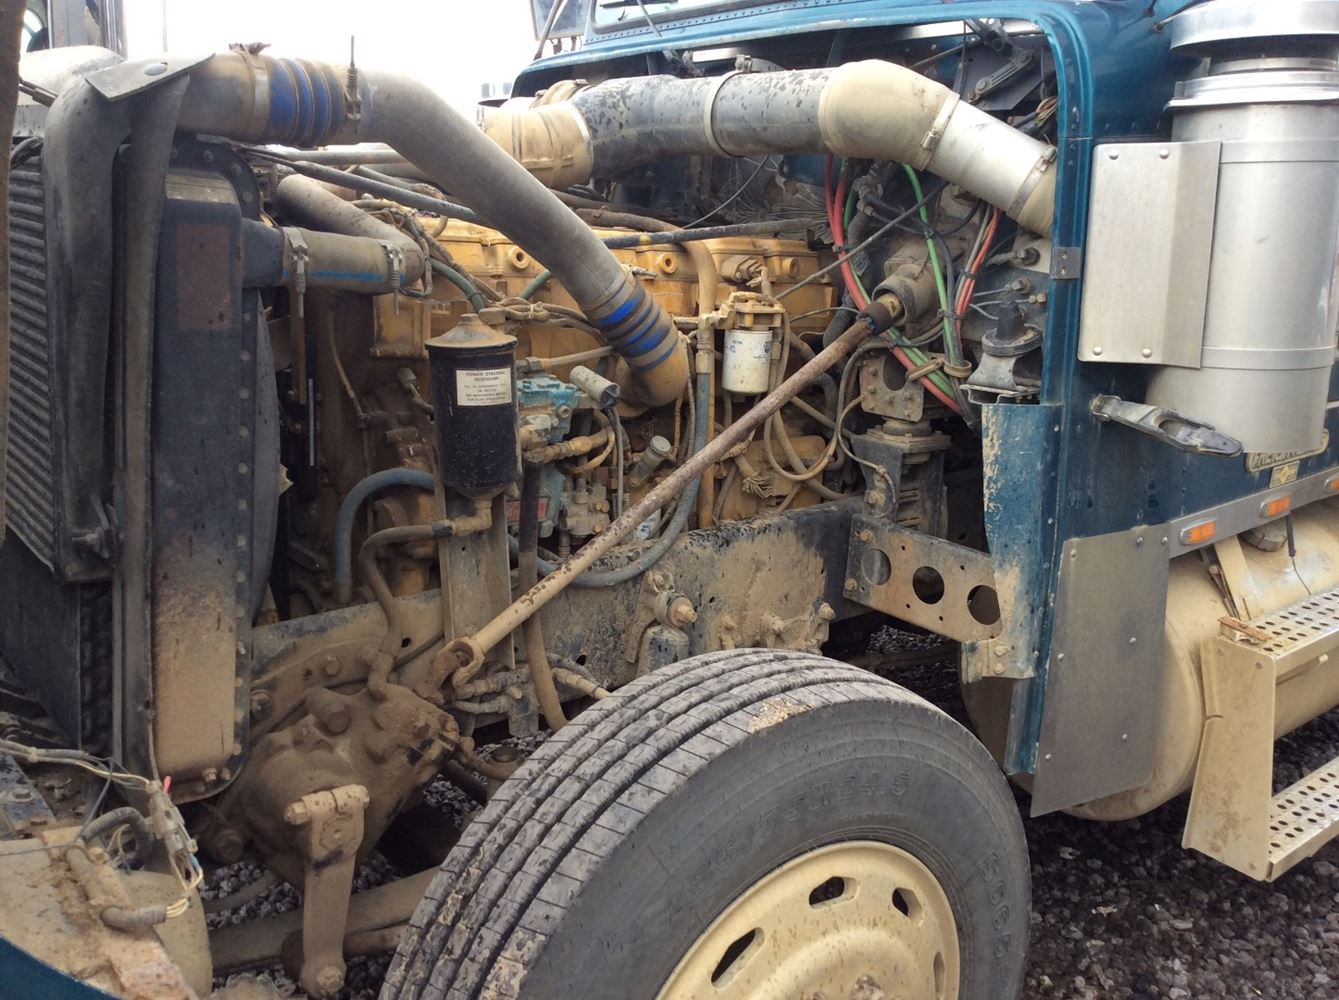 1996 Freightliner CLASSIC (Stock #102316-6)